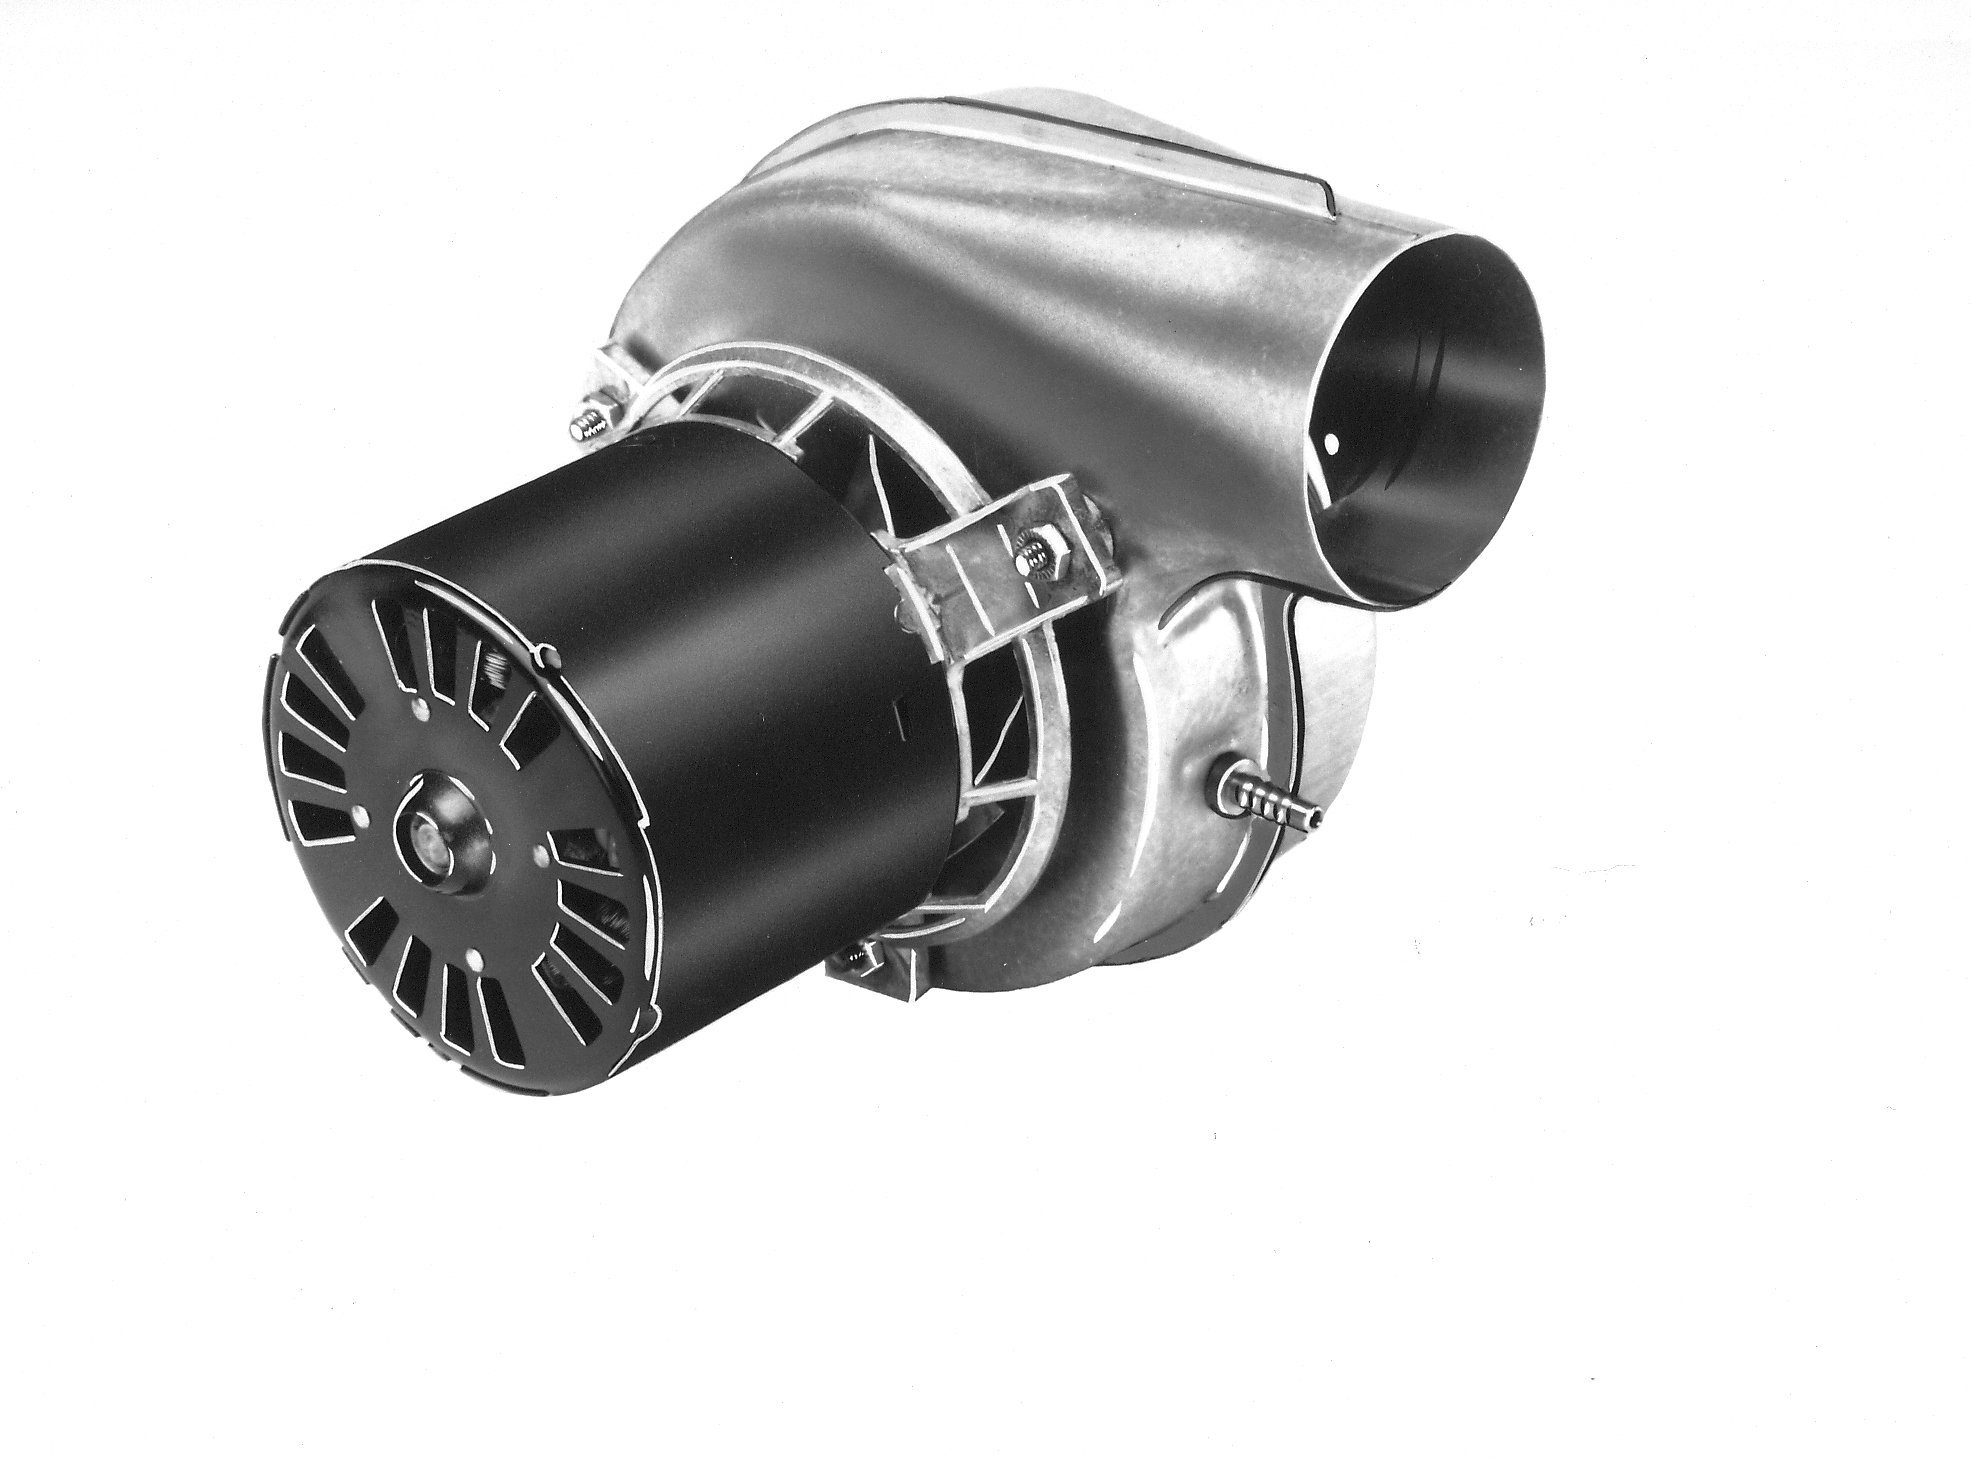 Fasco A135 3.3'' Frame Shaded Pole OEM Replacement Specific Purpose Blower with Sleeve Bearing, 1/60HP, 3,000 rpm, 120V, 60 Hz, 0.7 amps